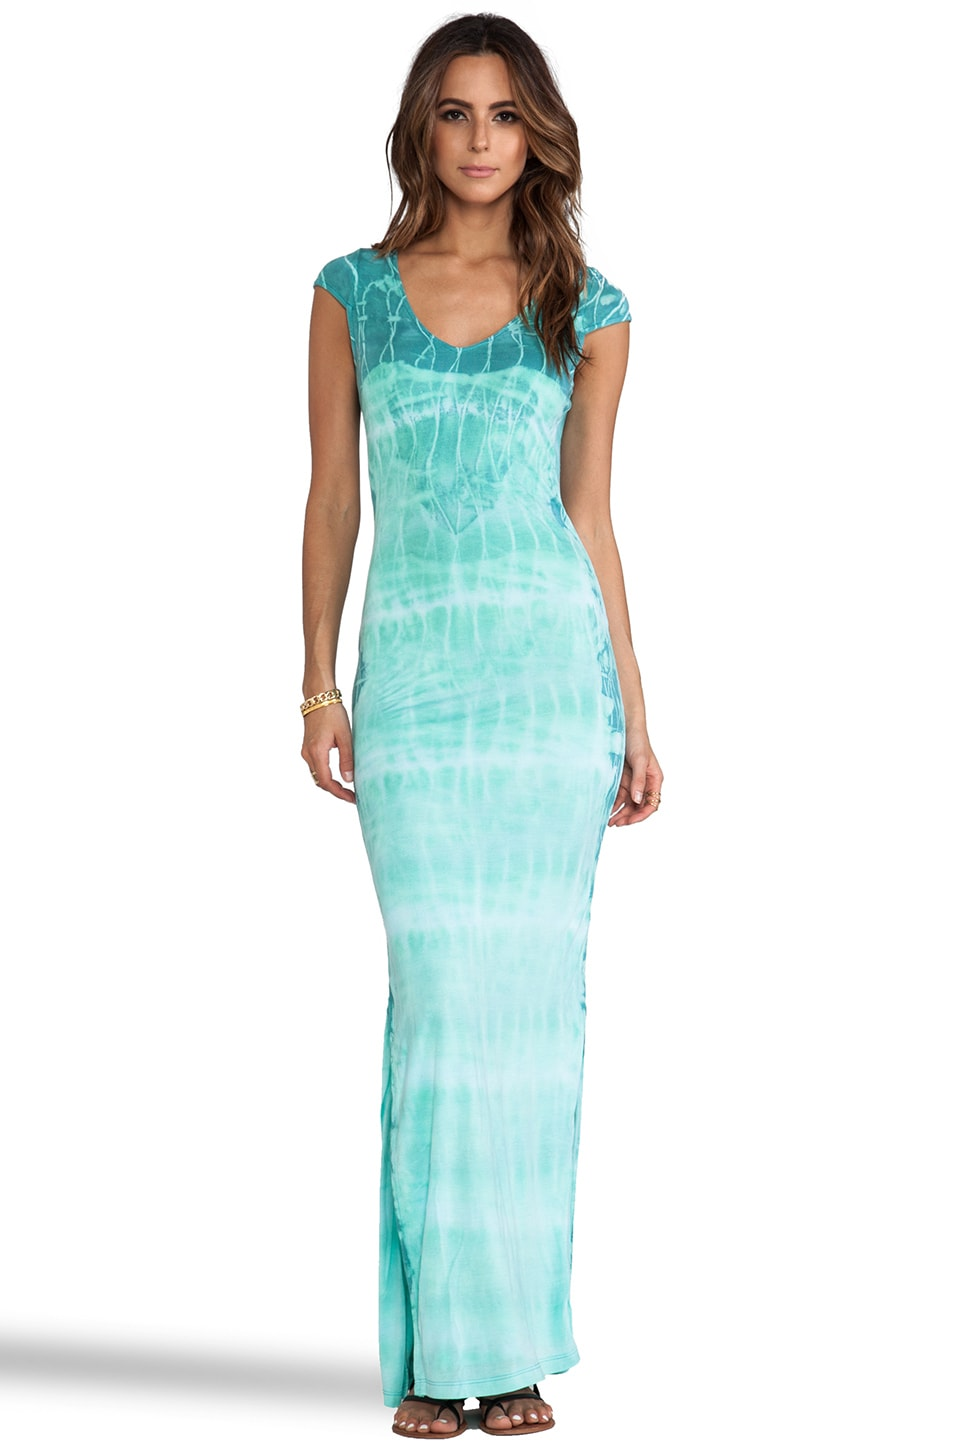 WOODLEIGH Aphrodite Tie Dye Maxi Dress in Neptune